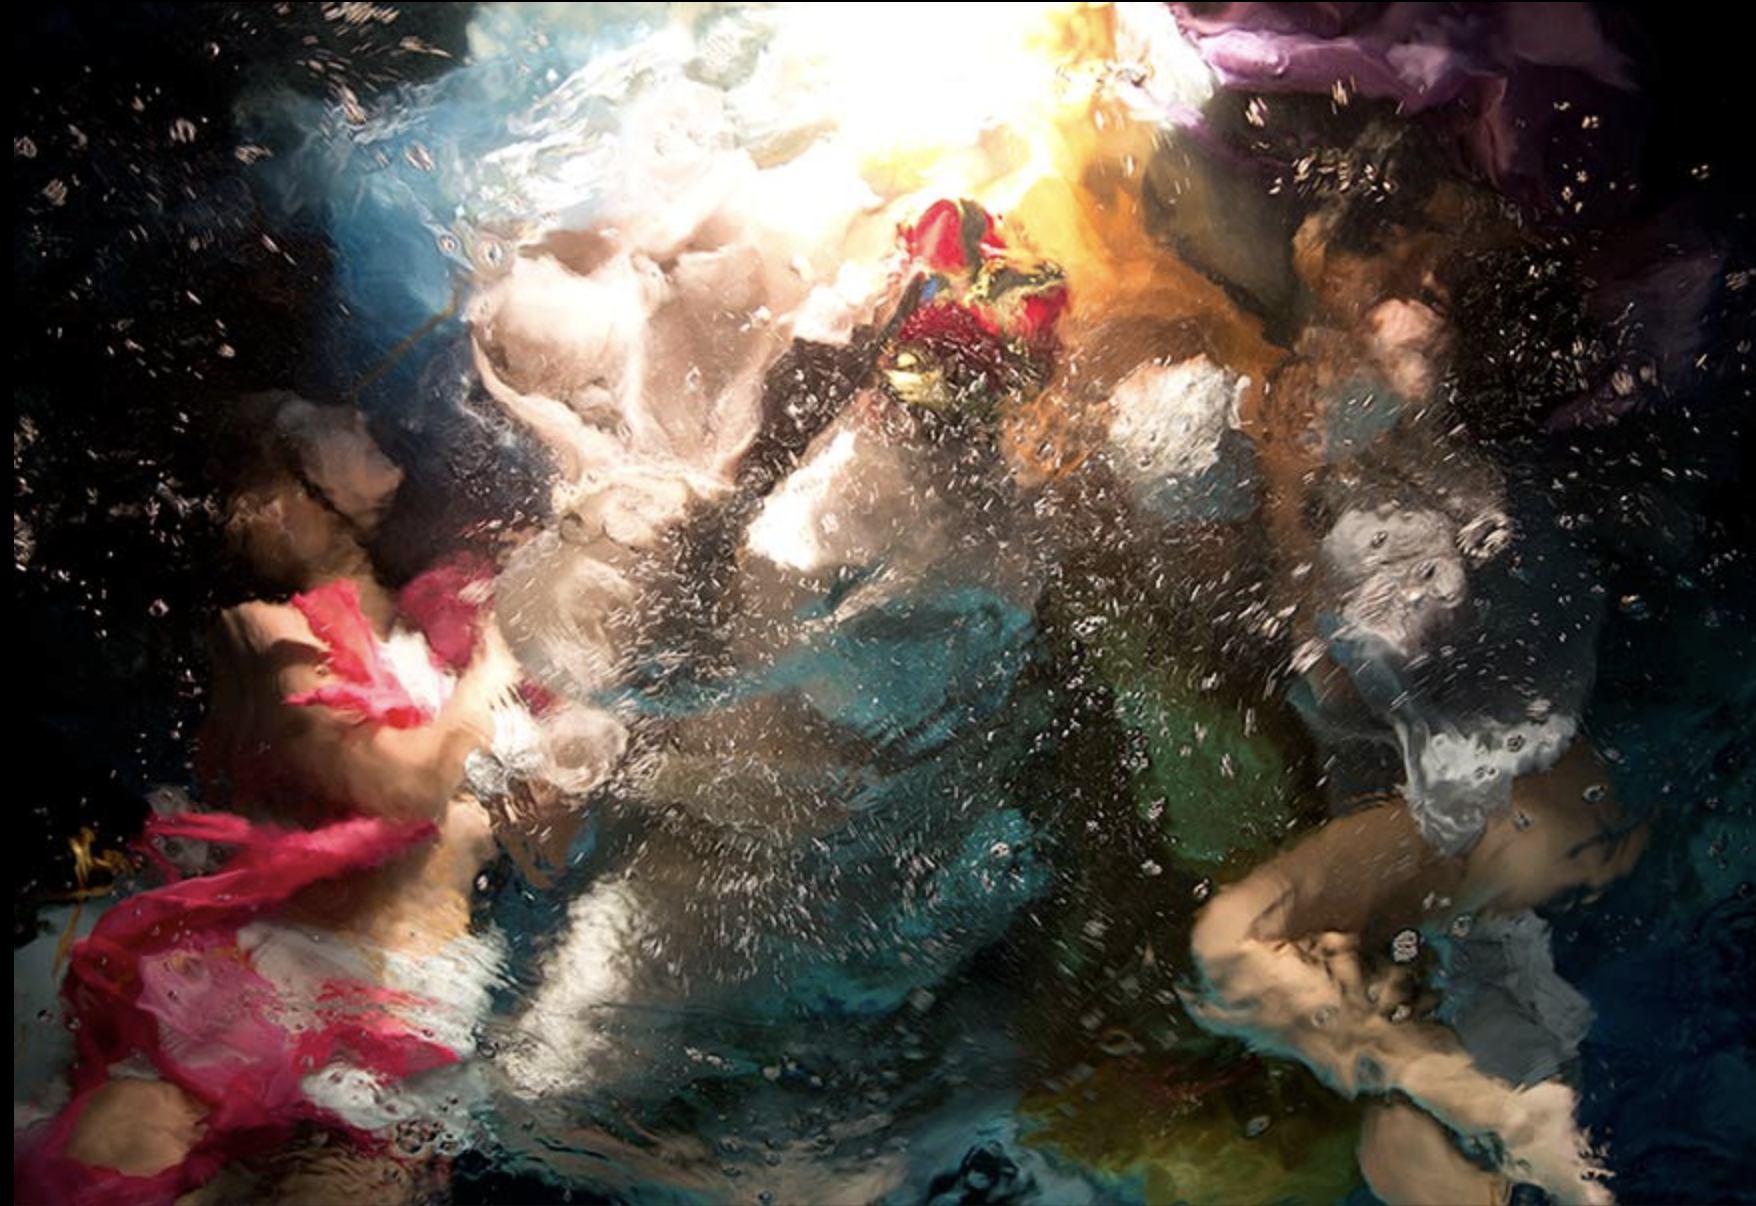 Christy Lee Rogers, All Colors Bleed into One  Archival Pigment Print, 57x83 in.